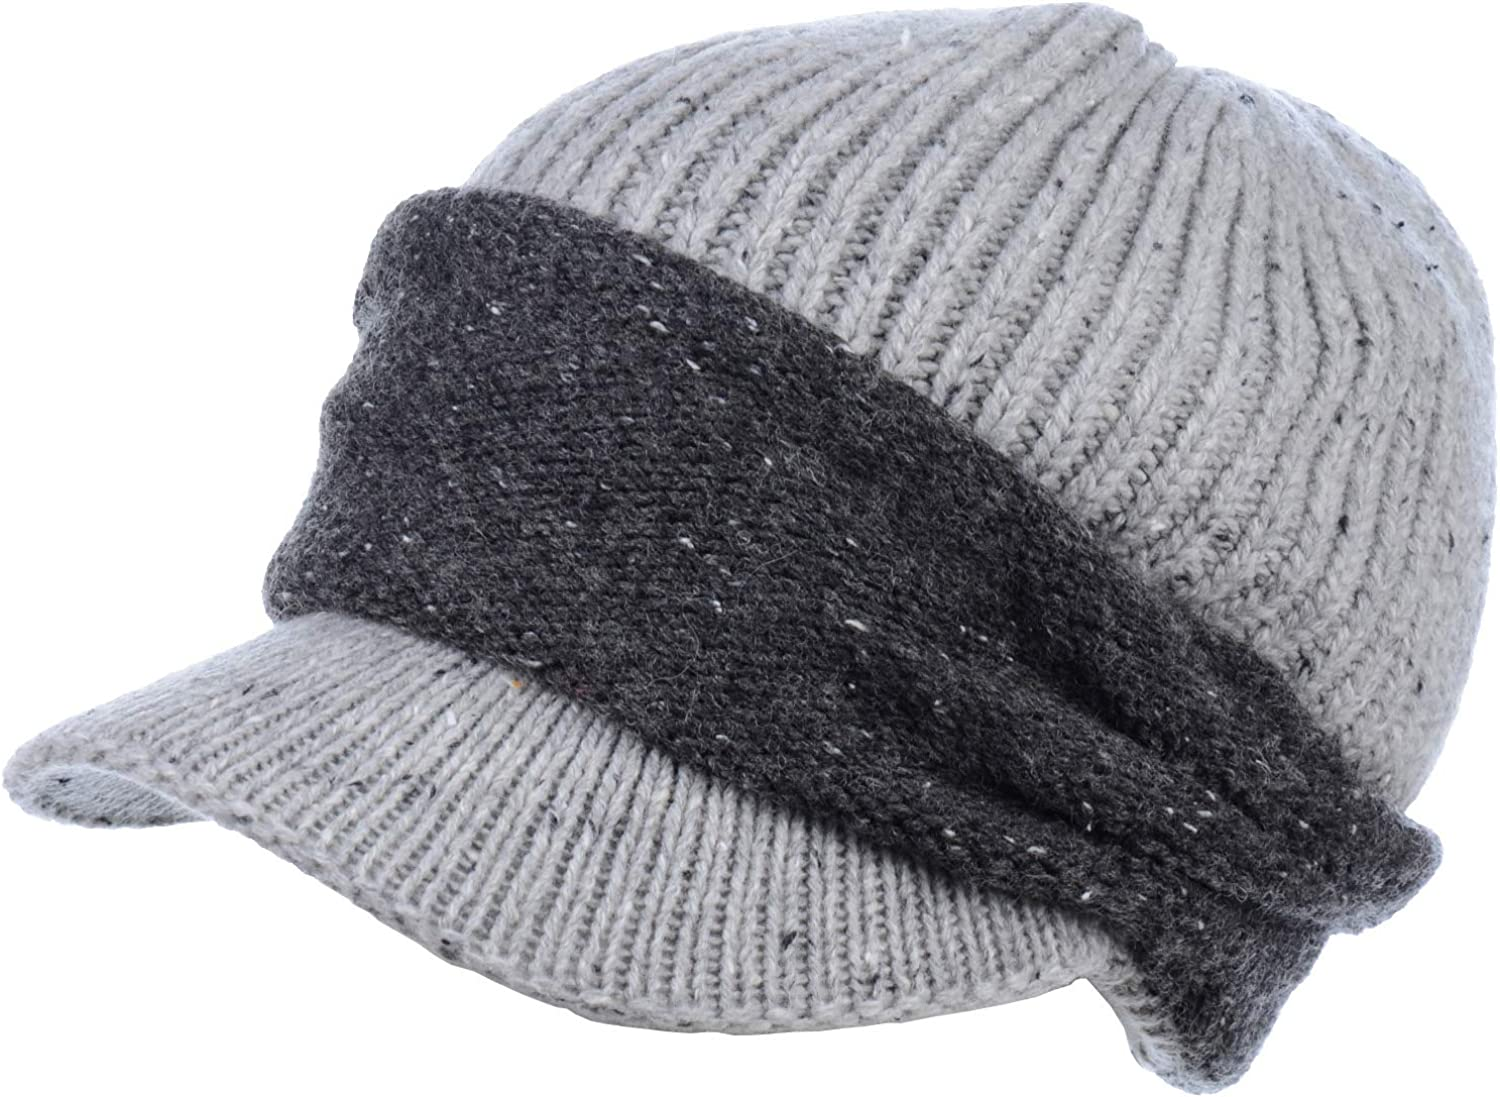 Be Your Own Style BYOS Womens Winter Rib Cozy Fleece Lined Knit Hat Newsboy Cabbie Beanie W Visor